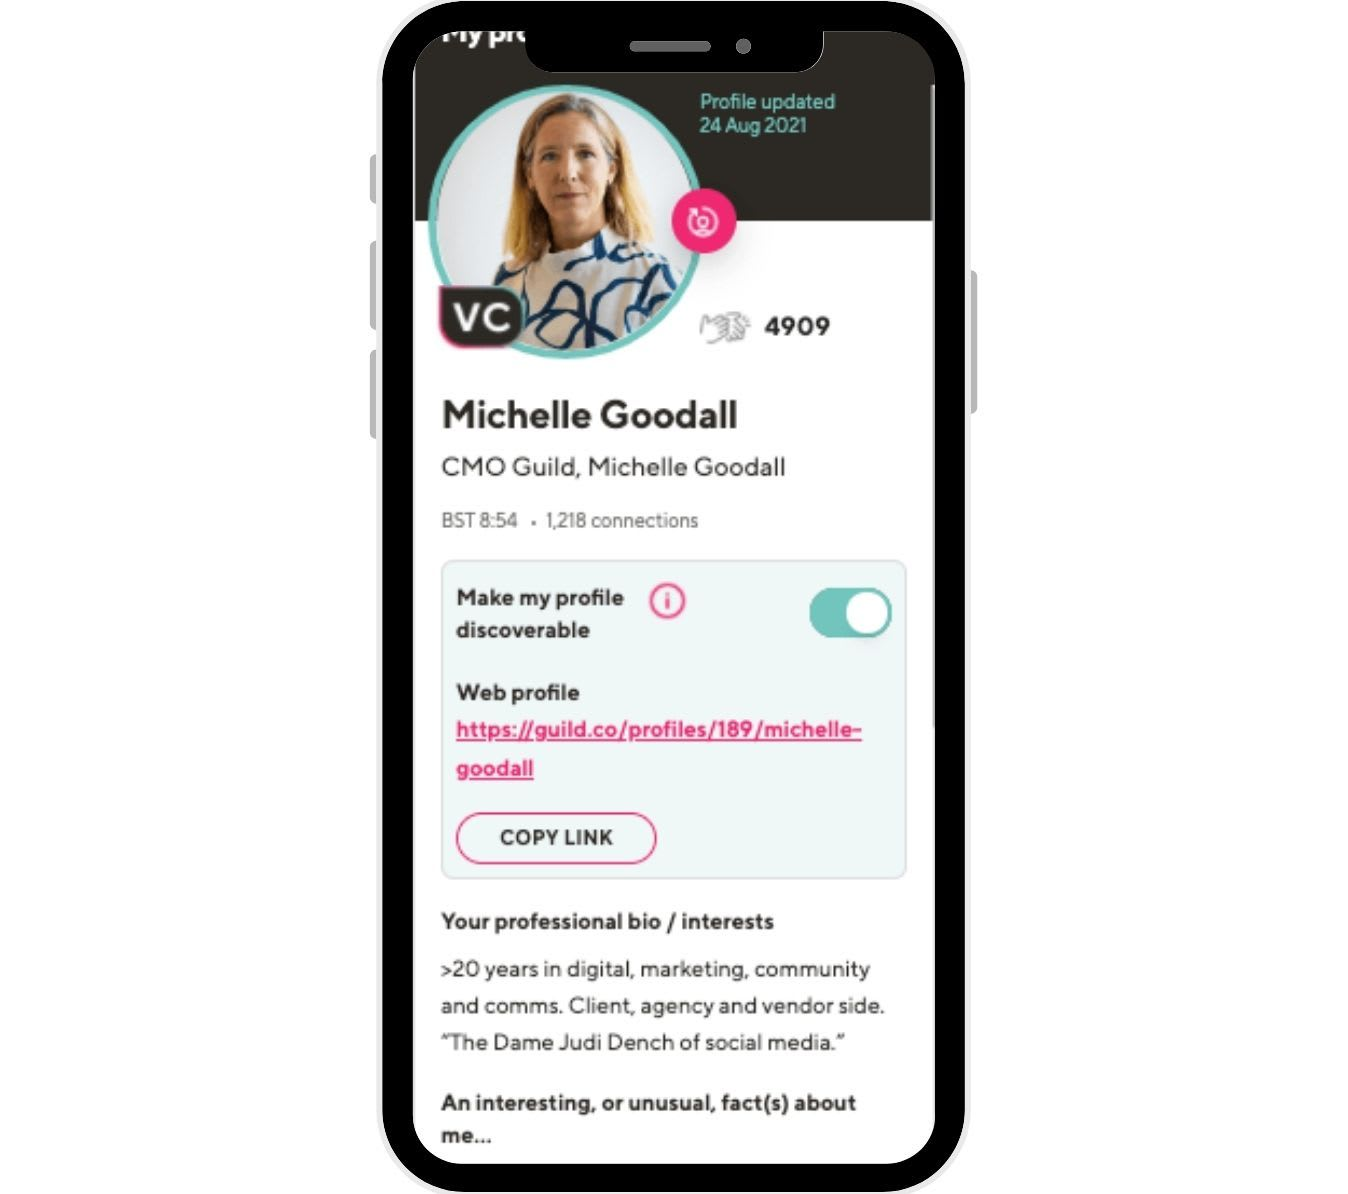 Guild profiles provides lots of space for your personal information as well as room for an interesting fact - often a good conversation starter to help with online networking